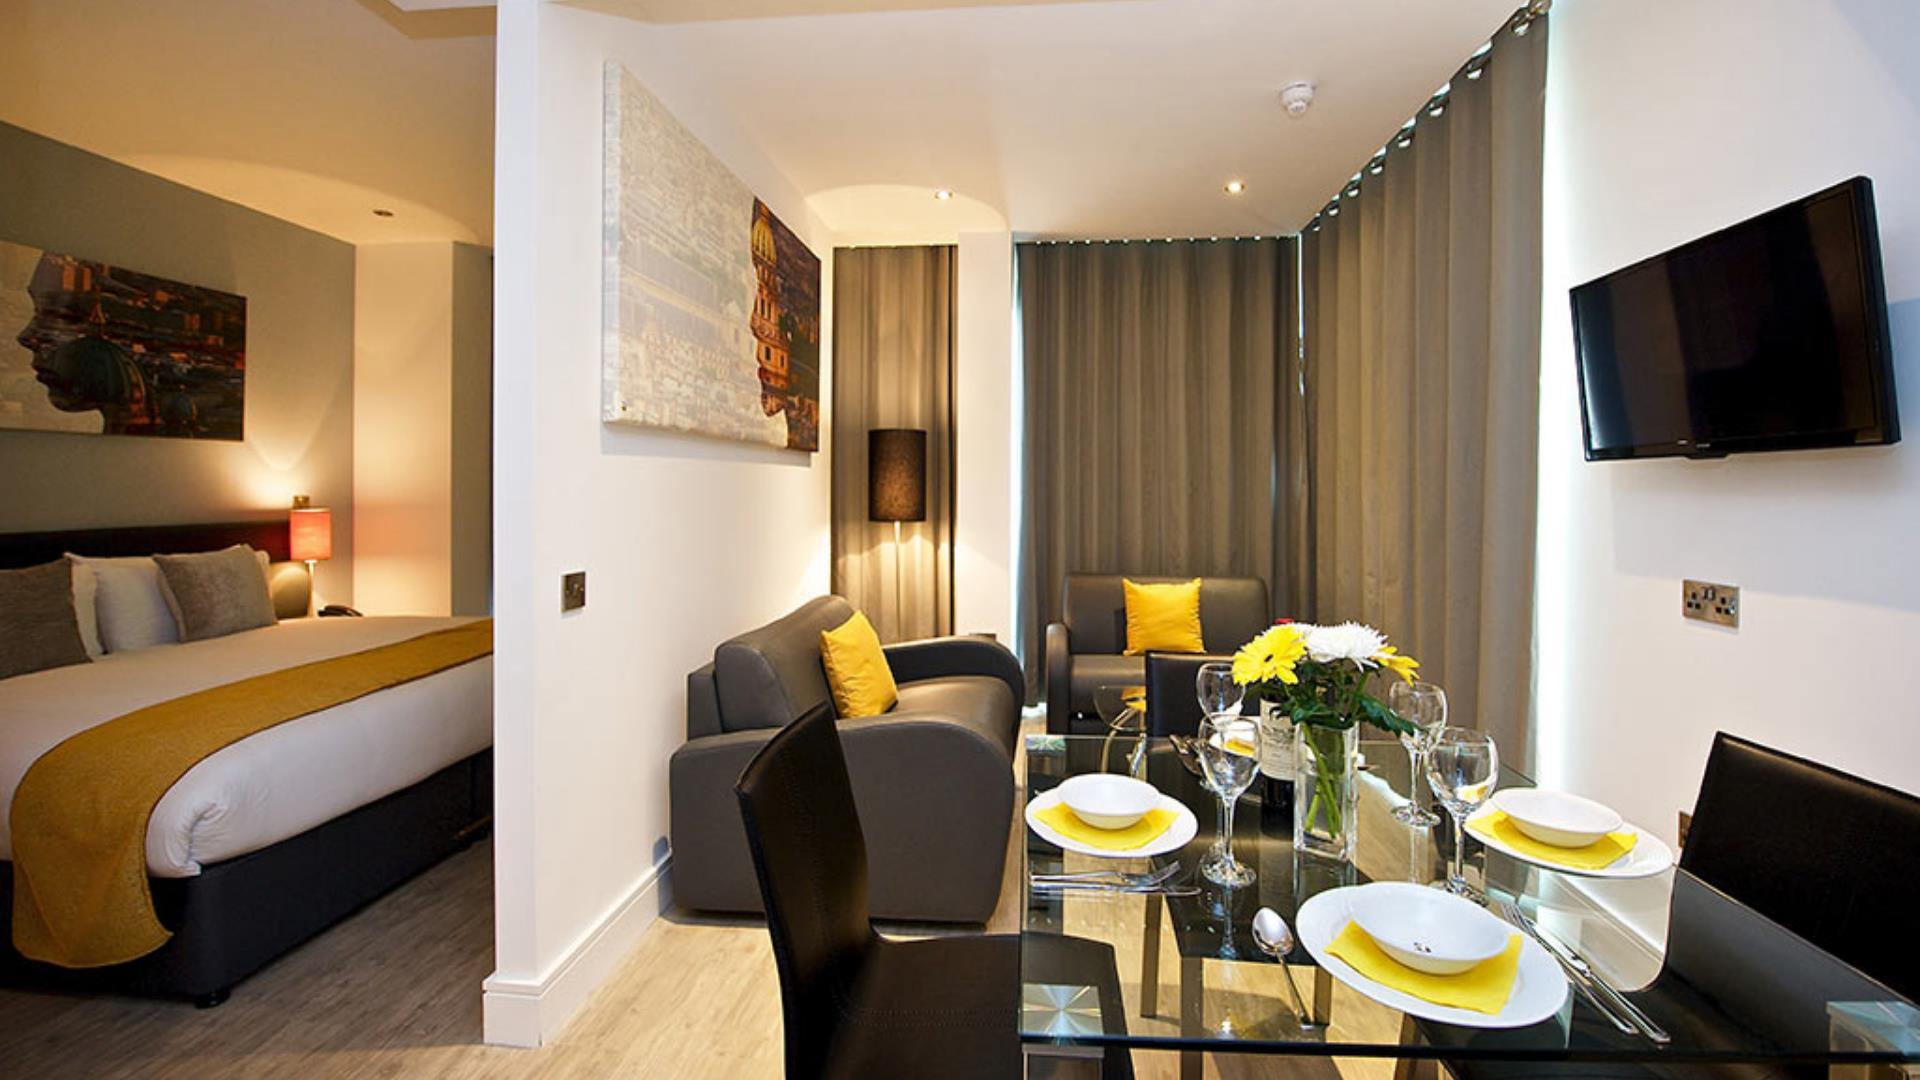 The stylish and modern self catering, serviced apartments at Staycity Aparthotels, Greenwich.